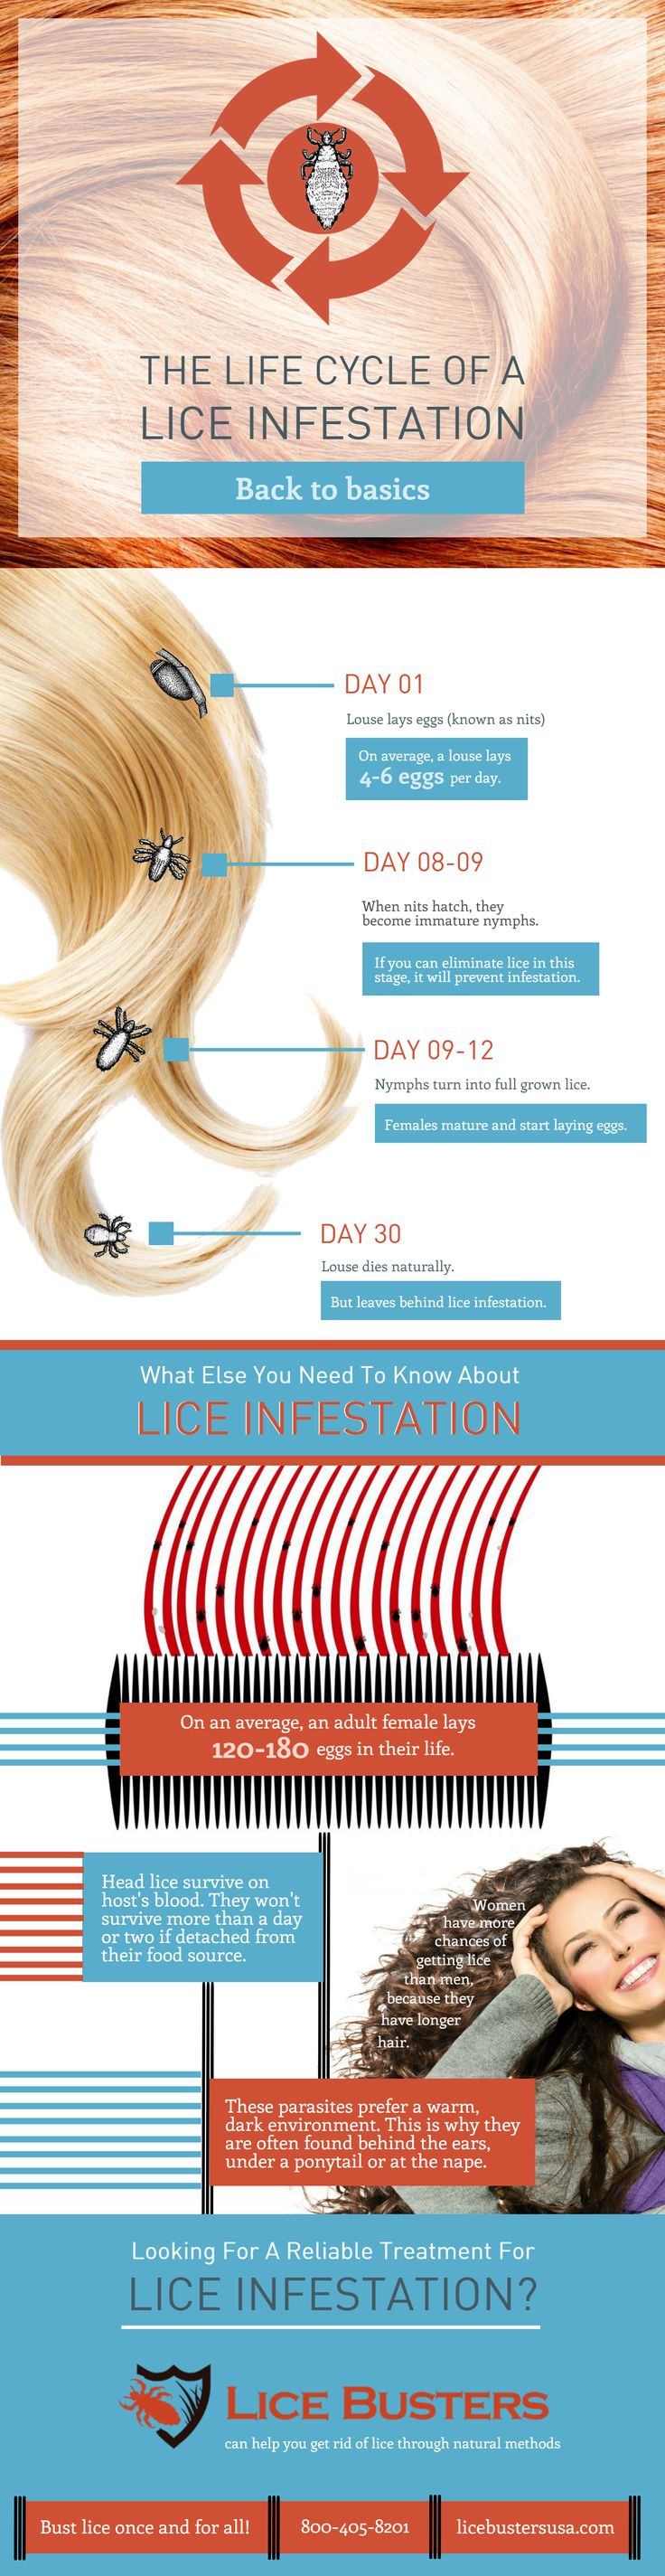 "Check out the infographic on ""The Life cycle of A Lice Infestation"". Looking for a reliable treatment for lice infestation? Lice busters can help you get rid of lice through natural methods. Bust lice once and for all. Call us now at 800-405-8201, or visit the website at https://www.licebustersusa.com"